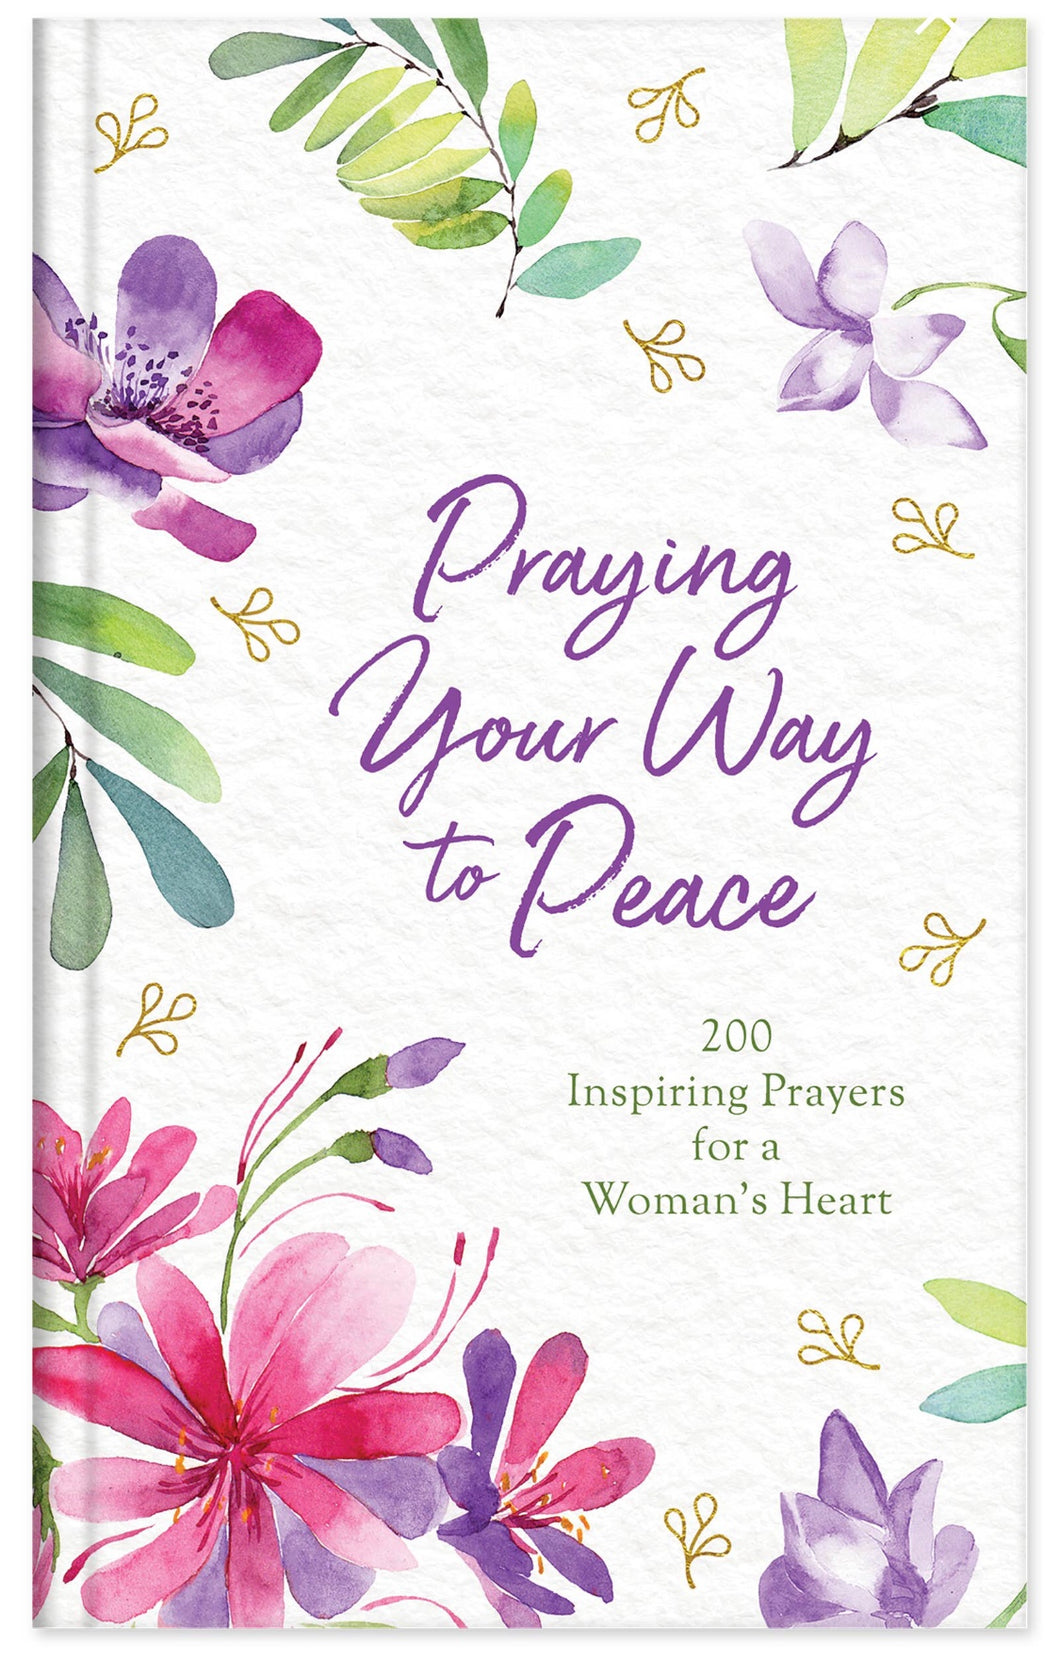 Praying Your Way to Peace